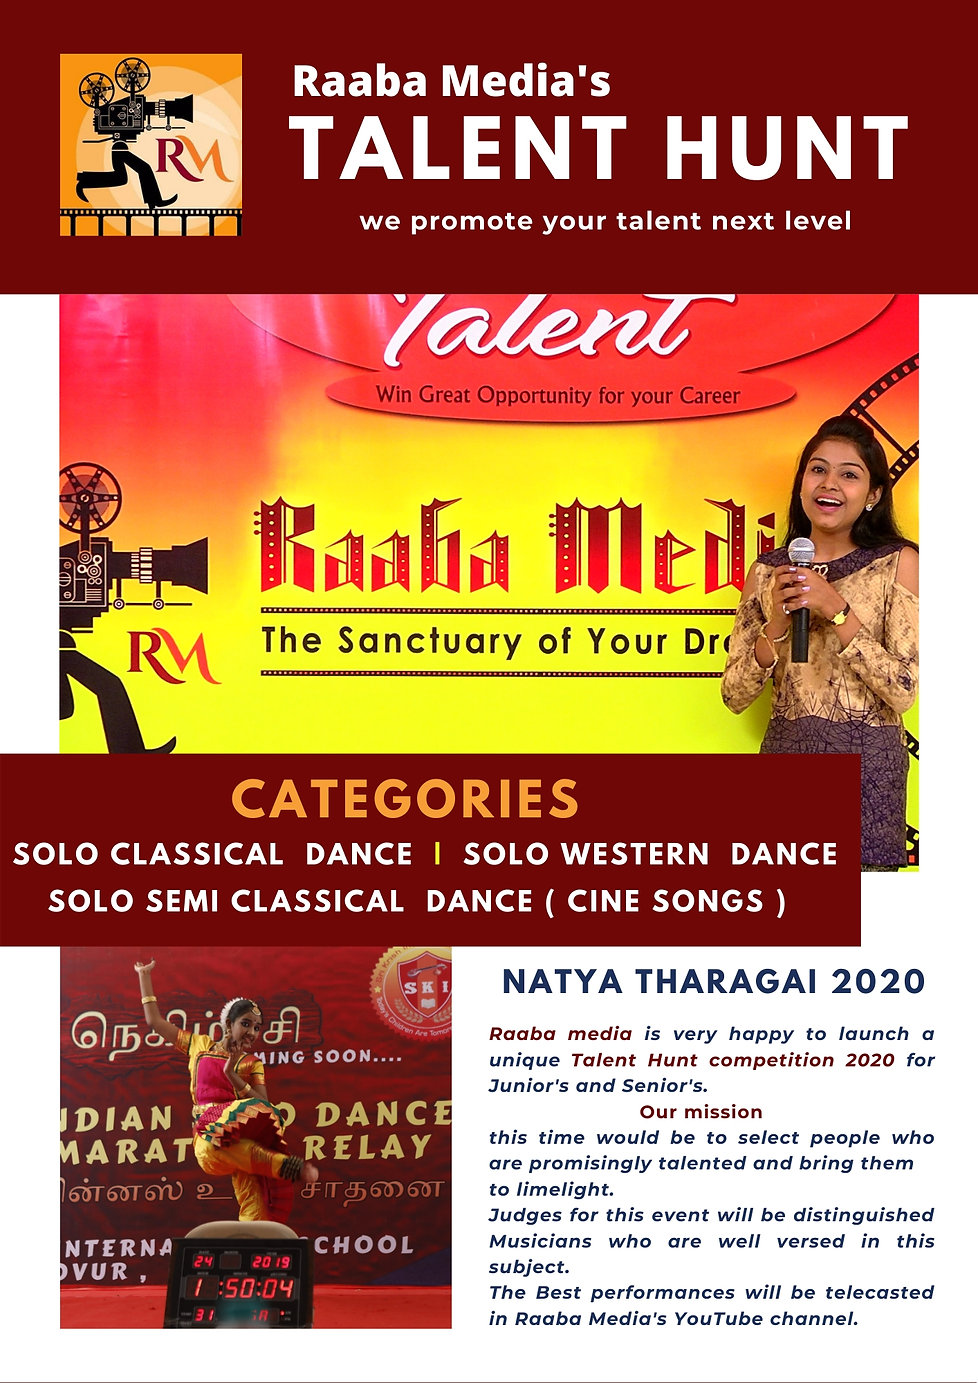 raaba media's talent hunt competition 23